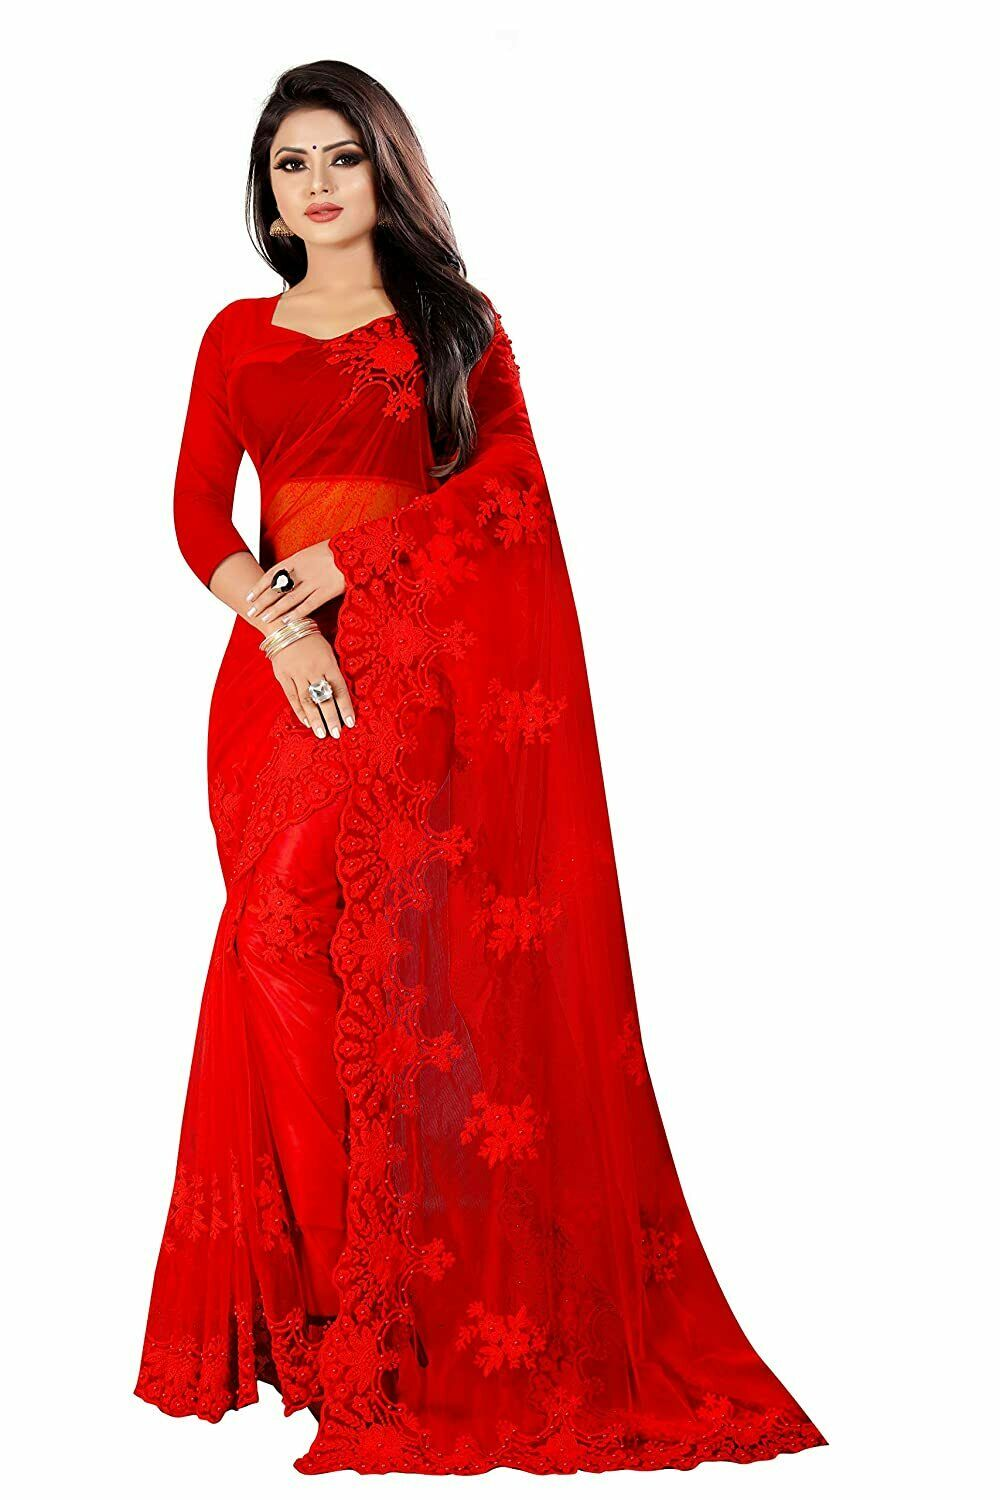 Indian Designer Women's Net Saree With Unstitched Blouse Piece, Red